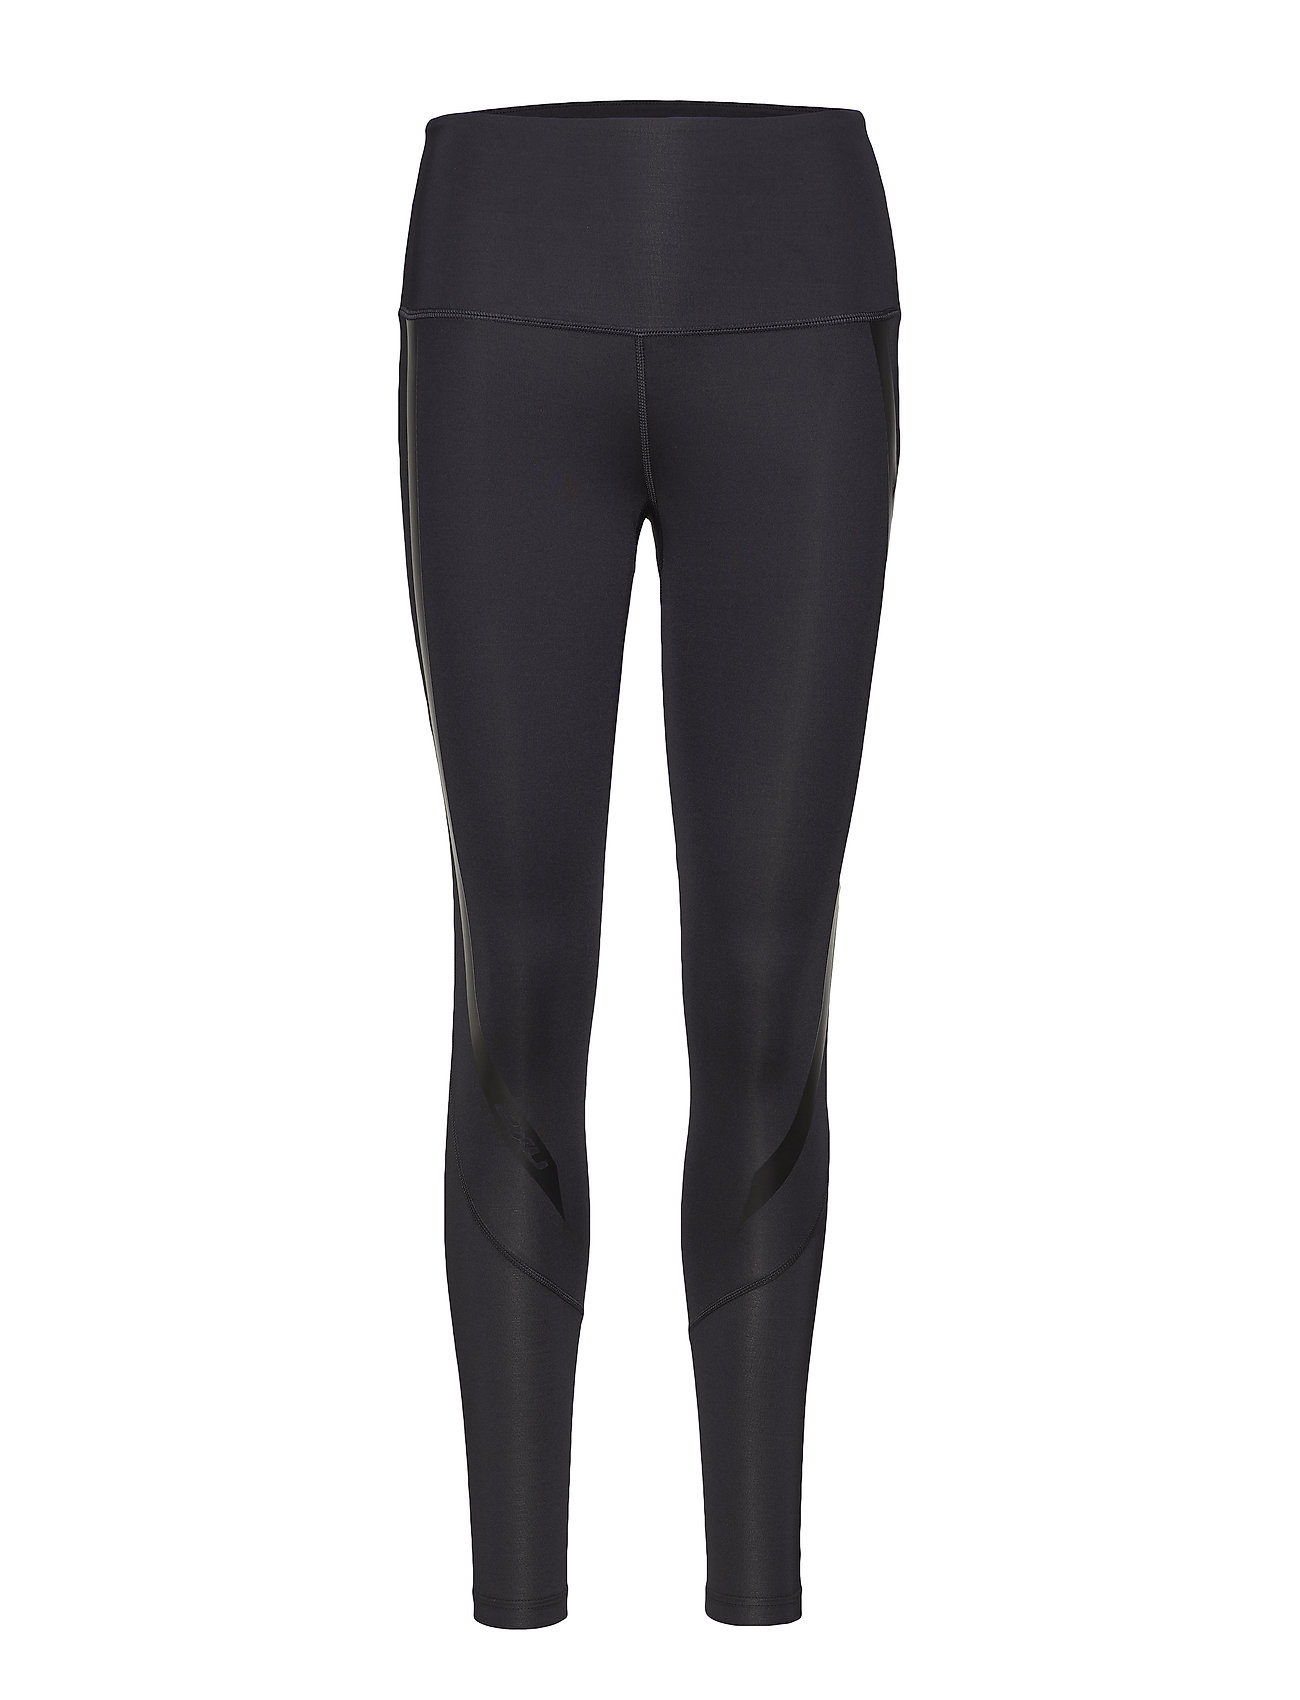 2XU Hi-Rise Compression Tights-W